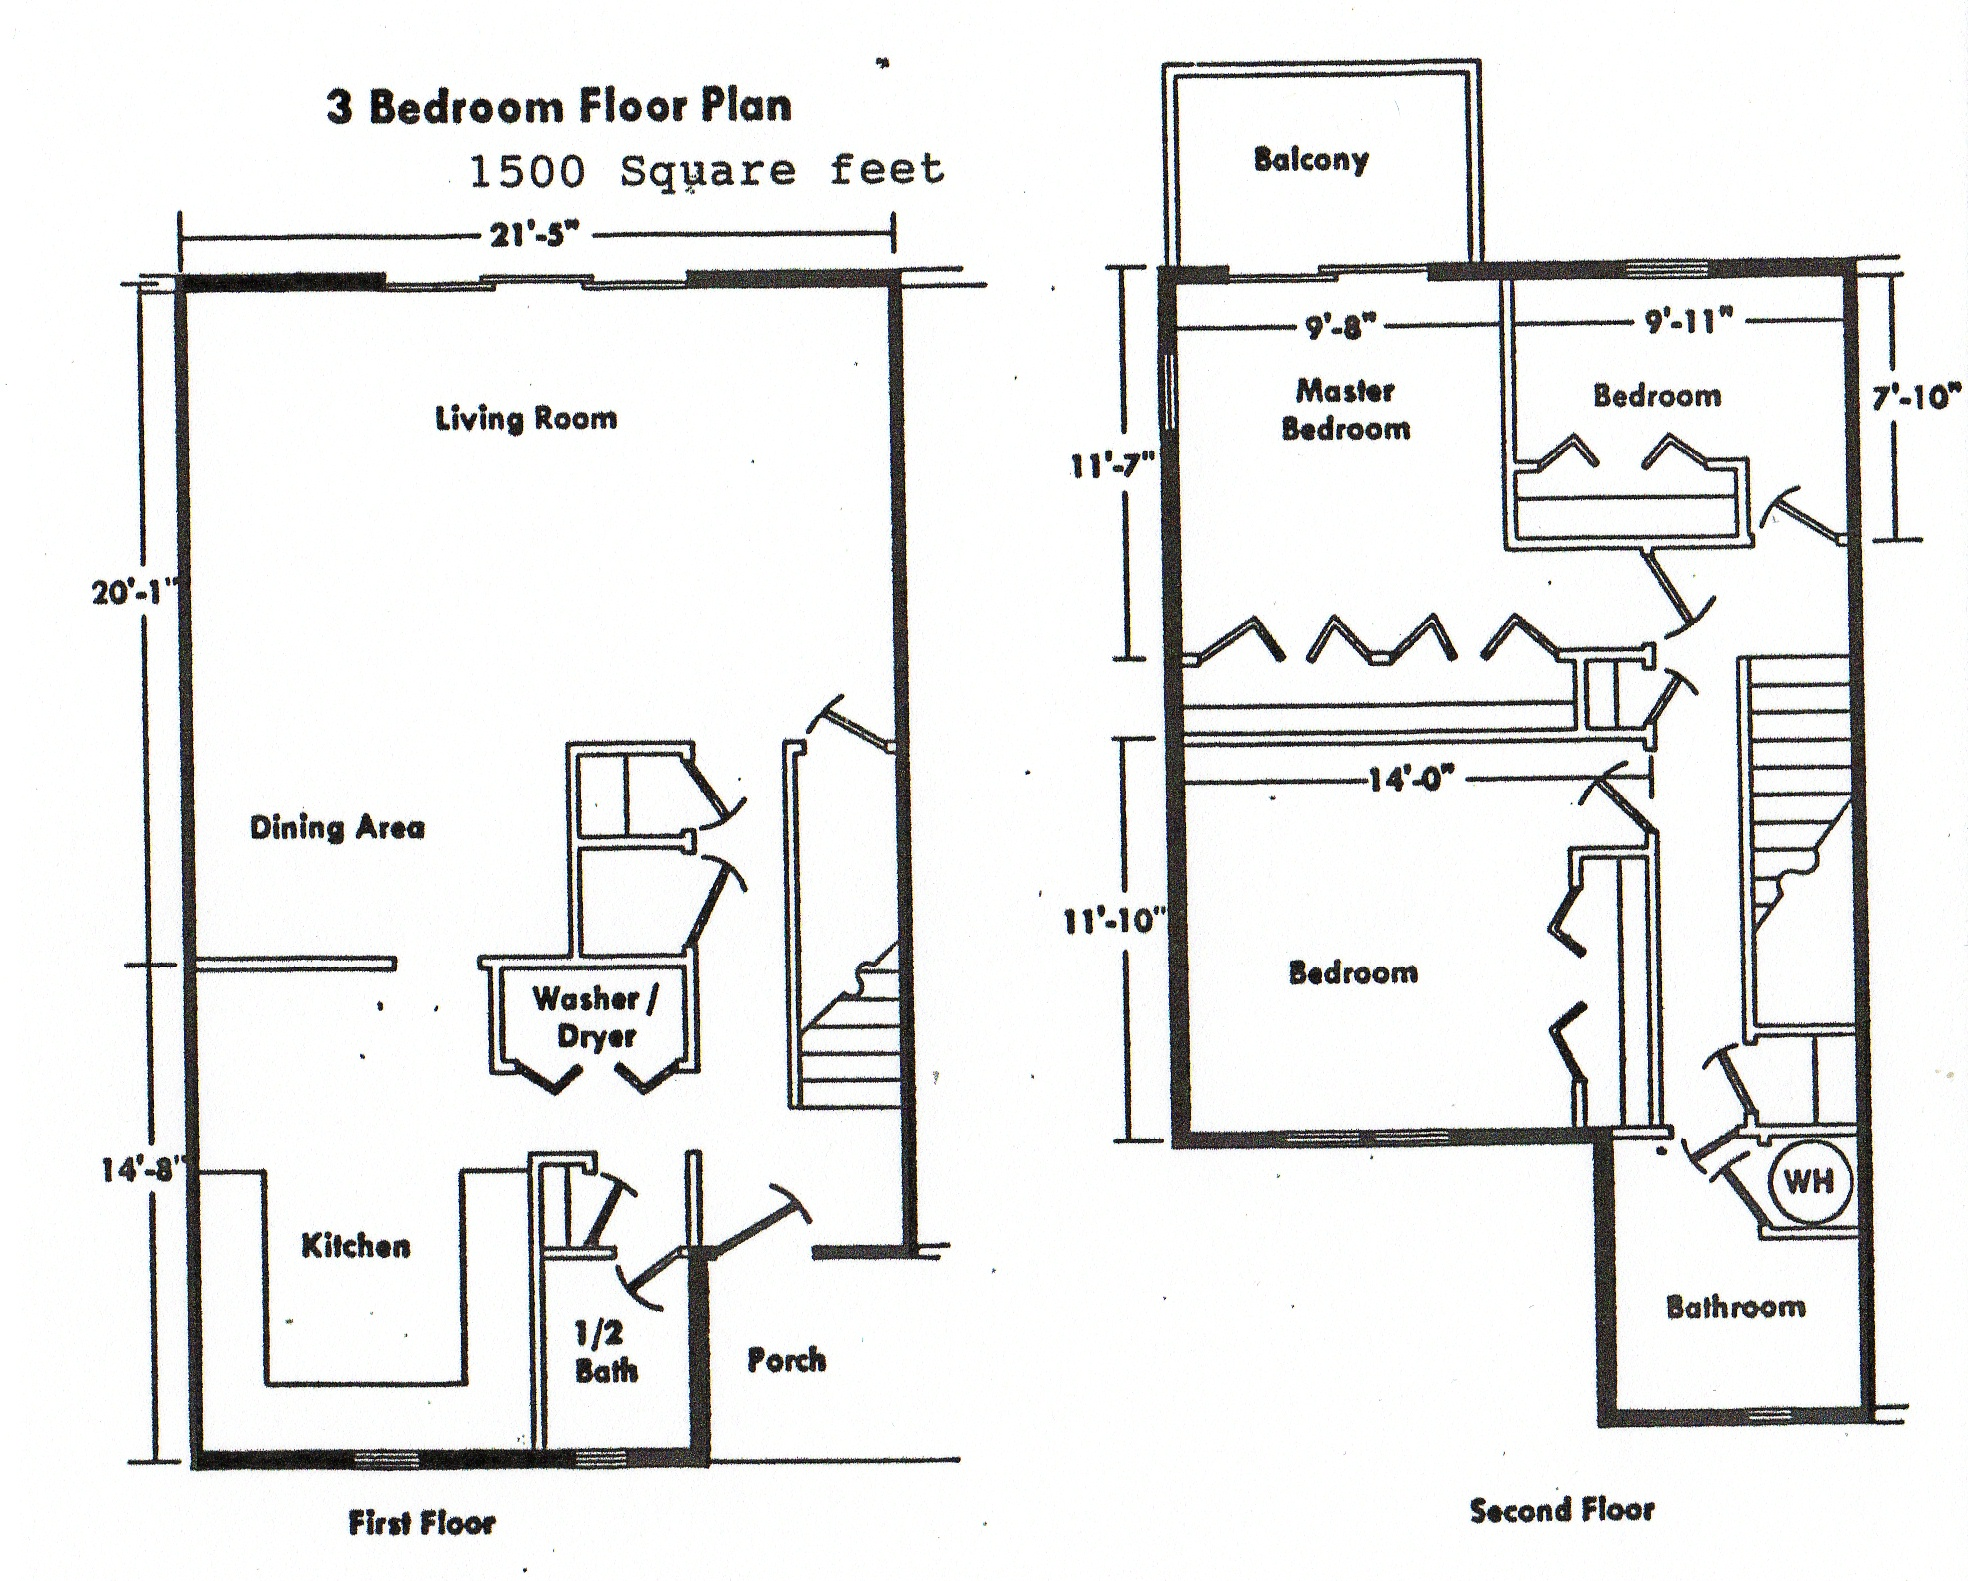 Home ideas Three bedroom floor plan house design